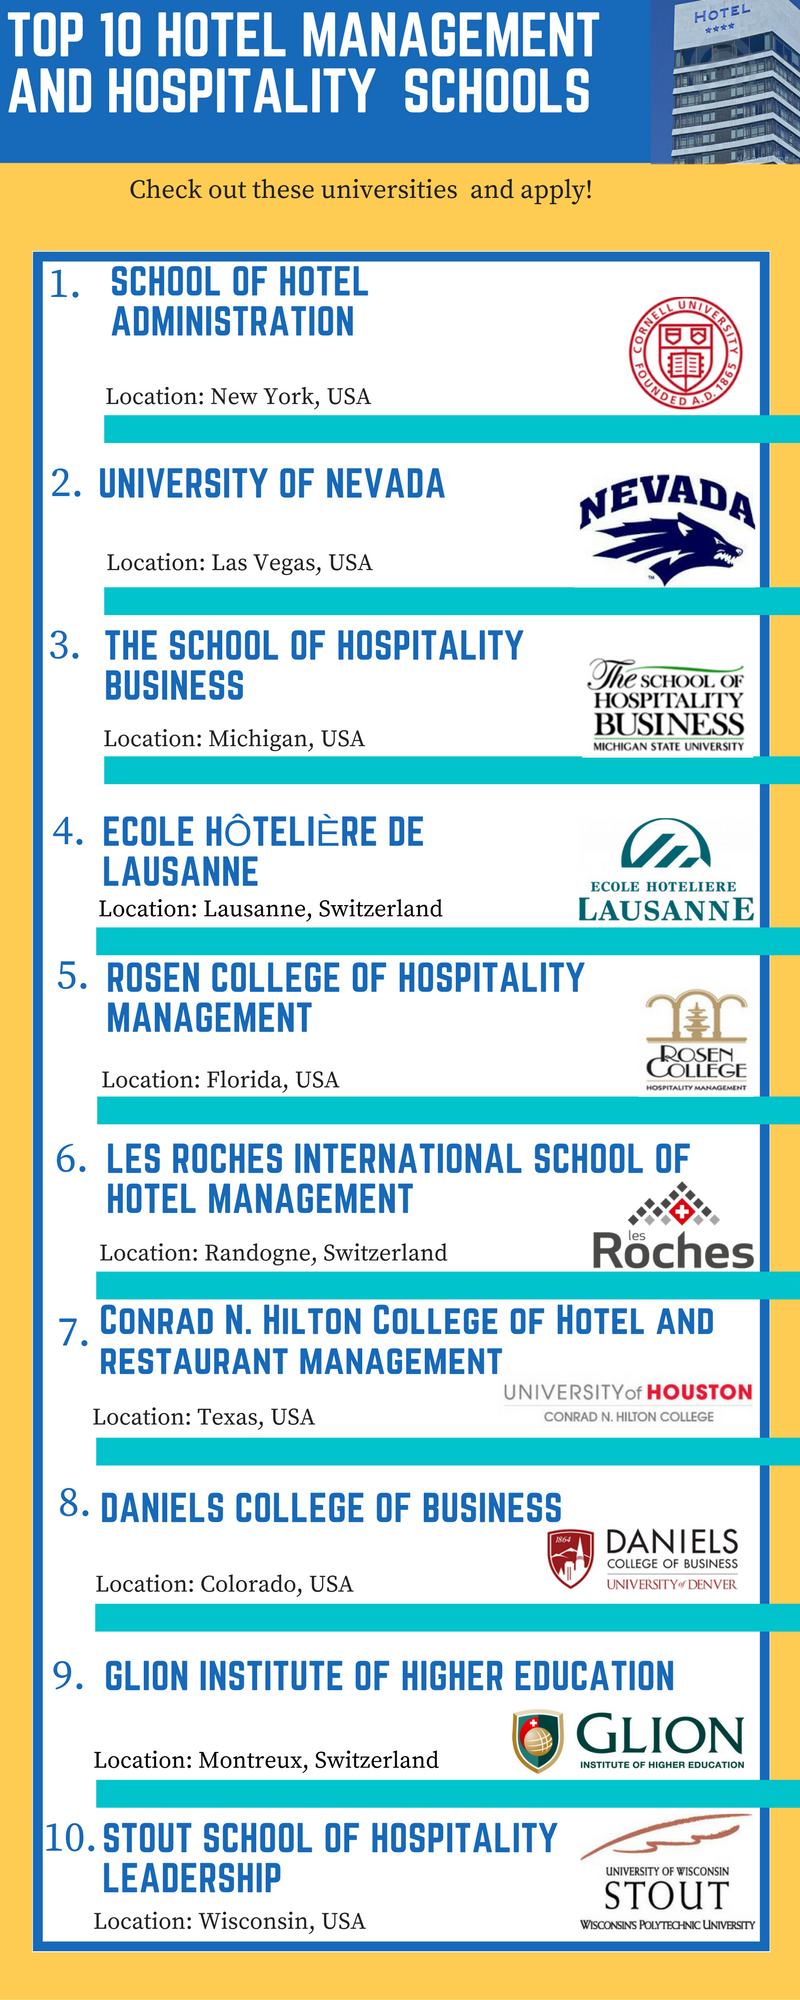 Top 10 hotel management and hospitality schools